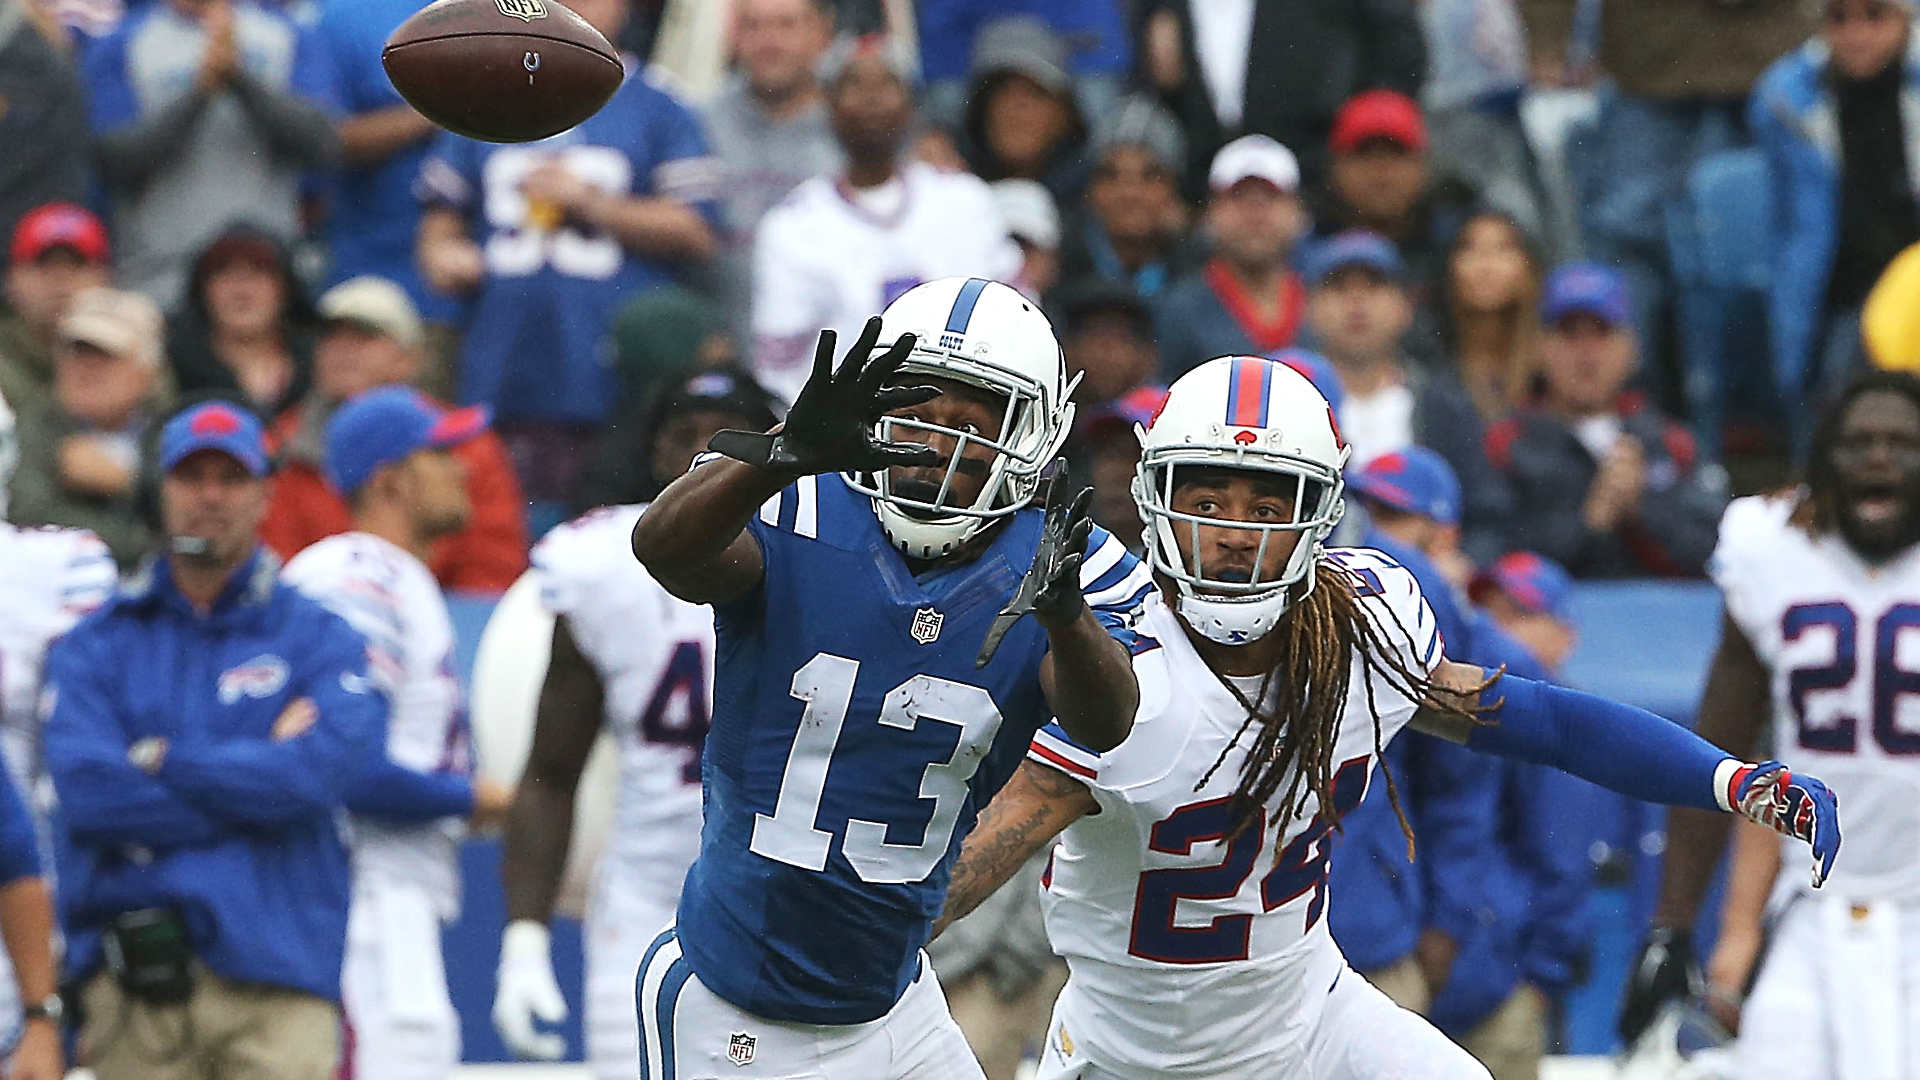 Colts receiver T.Y. Hilton out 'a few weeks' with left knee injury ...